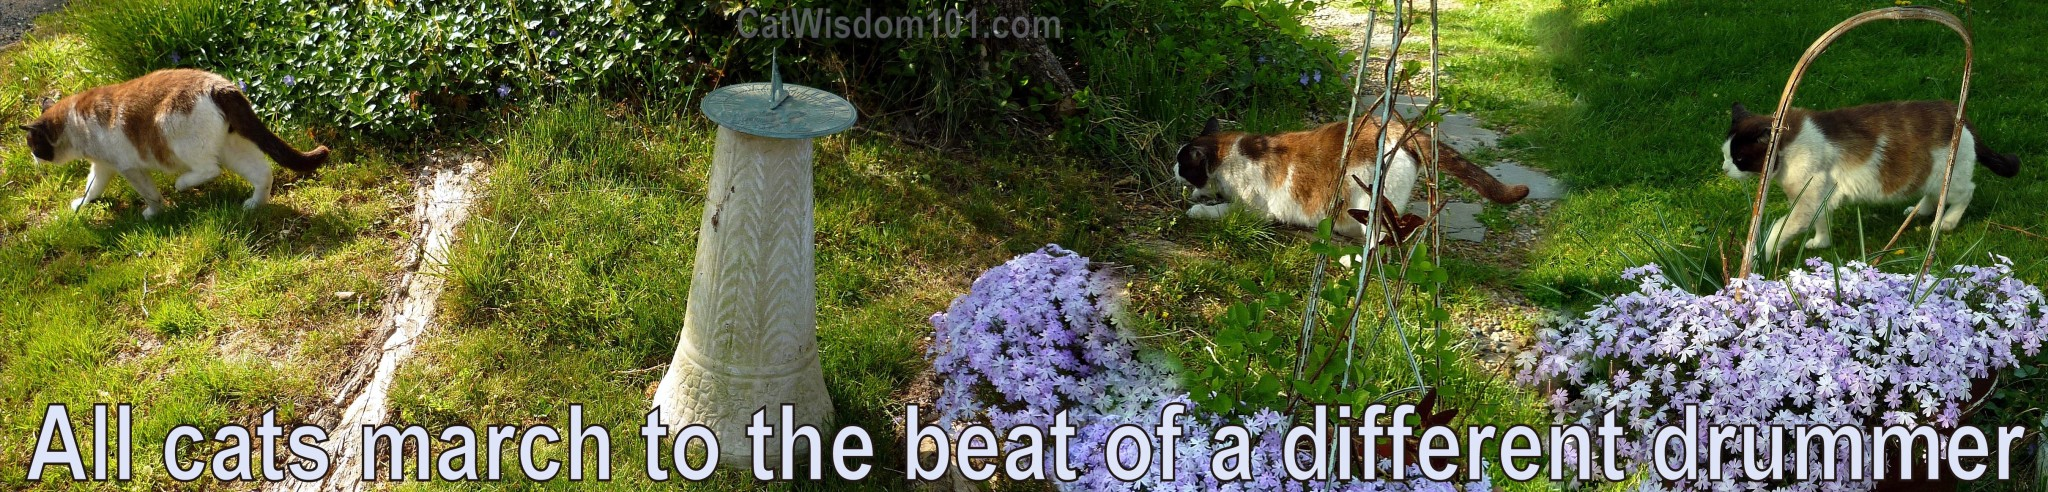 cats-quote-march-different-drummer-cat wisdom 101